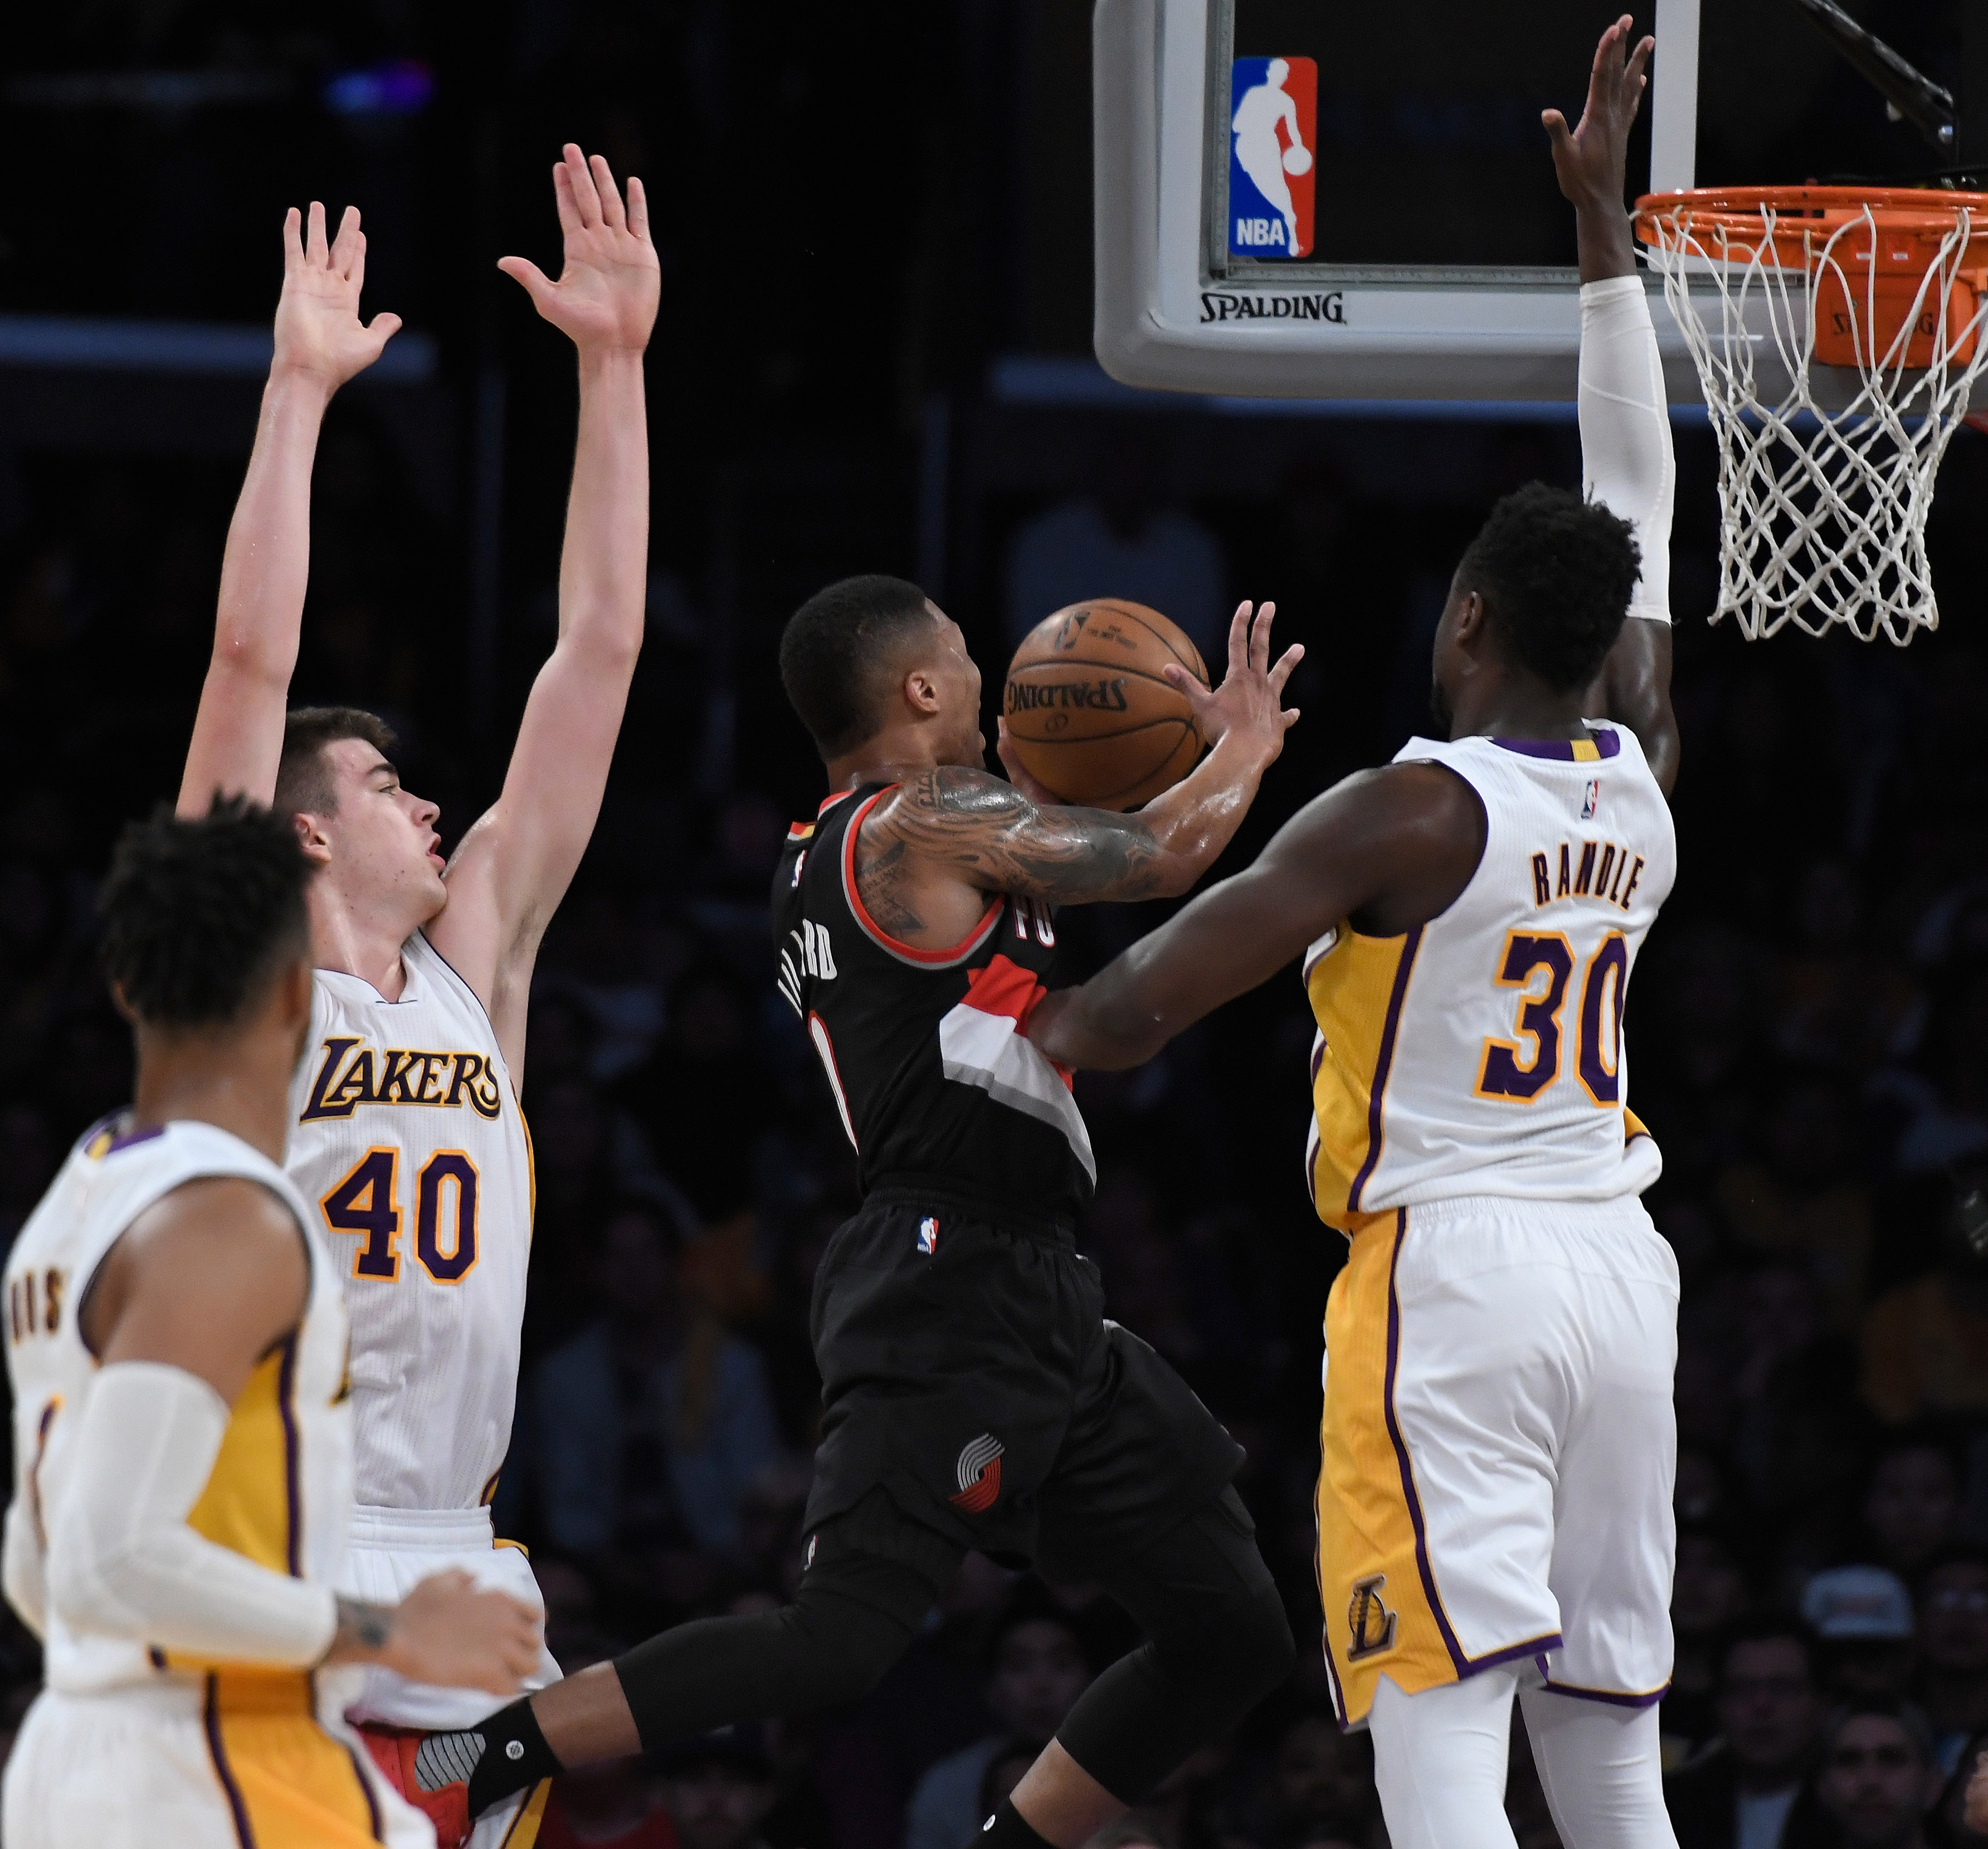 Blazers Win Tonight: Blazers Overtake 8th Spot With Dominant Win Against The Lakers